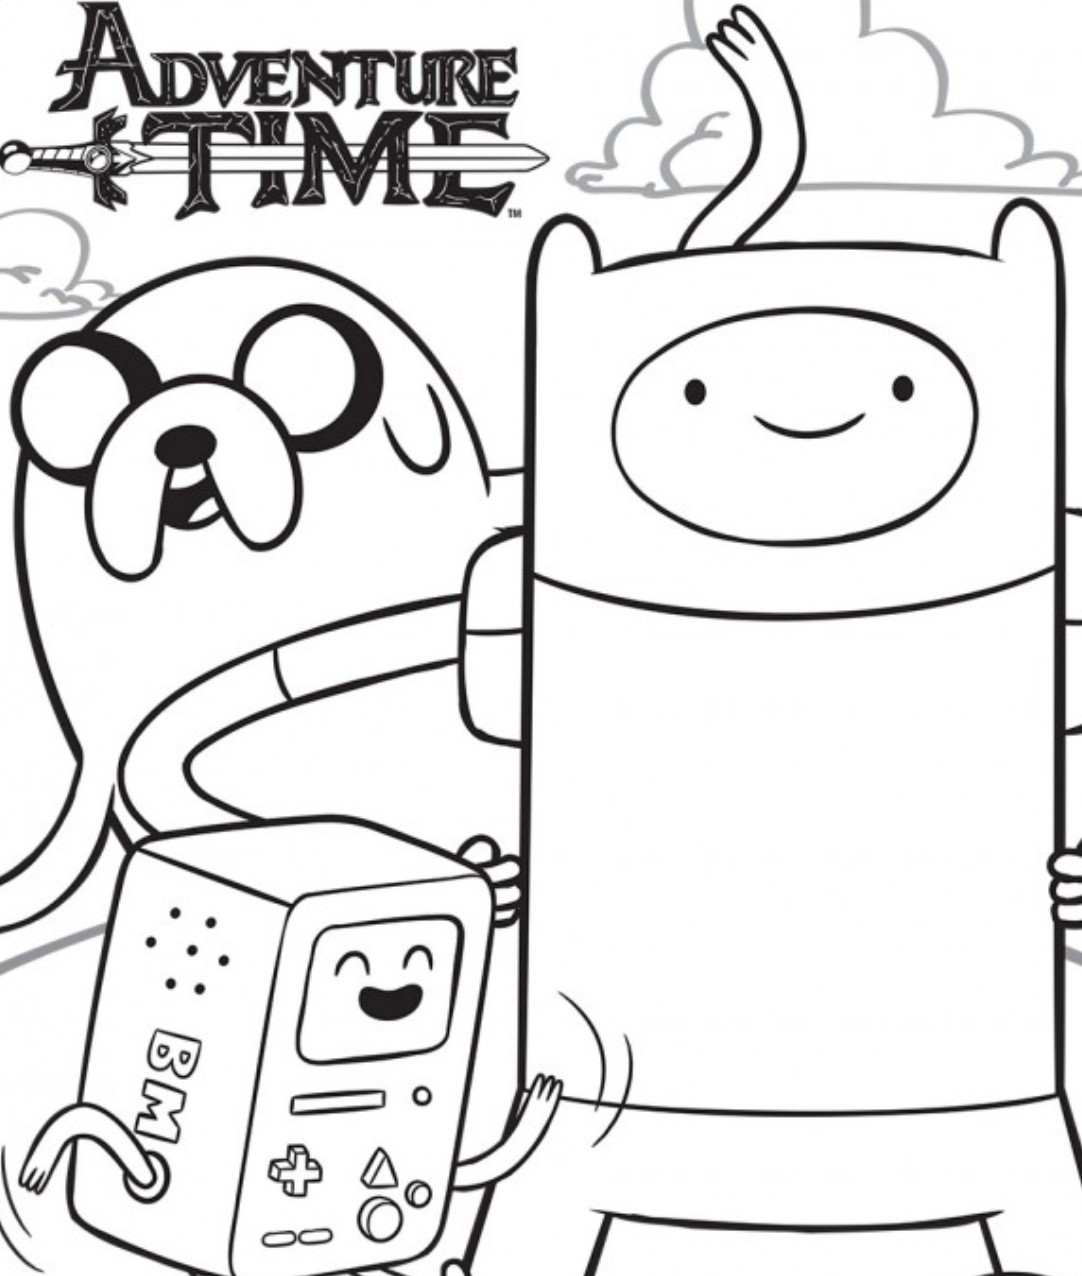 Uncategorized Adventure Time Coloring Pages To Print adventure time coloring pages best for kids pages